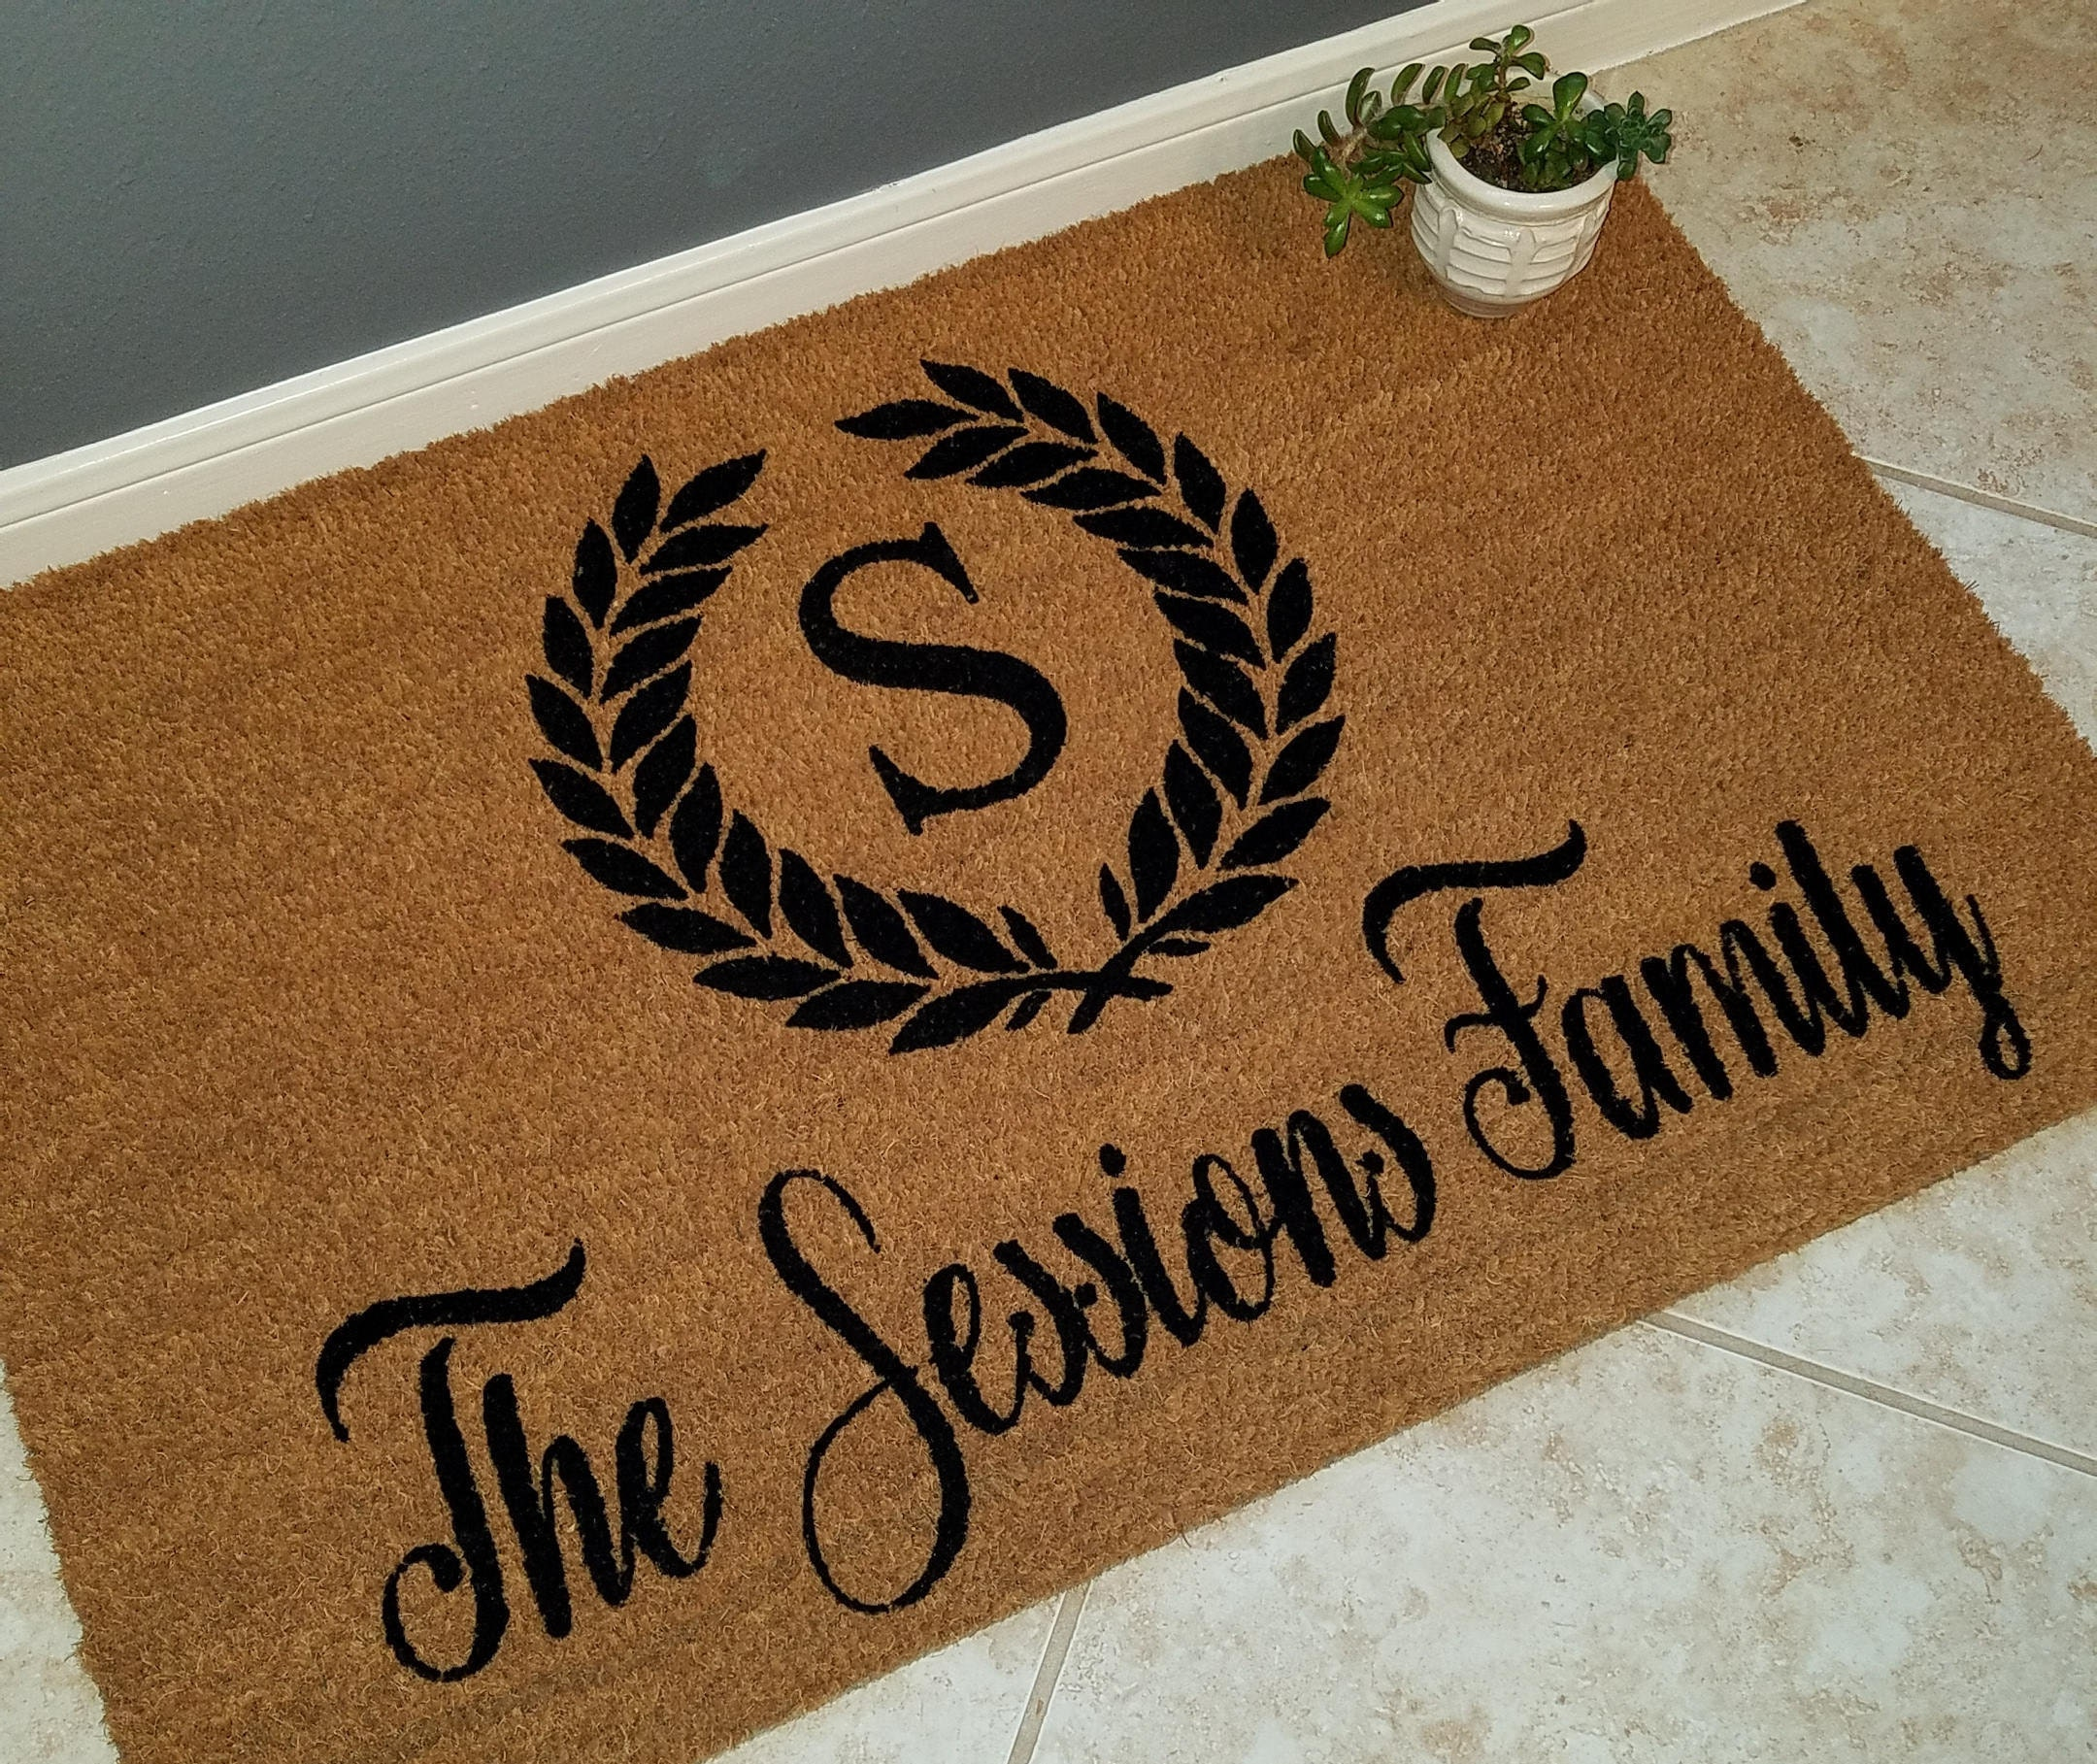 Monogrammed doormat personalized doormat custom doormat door mats wedding gift ideas gift for couples family gift unique gift